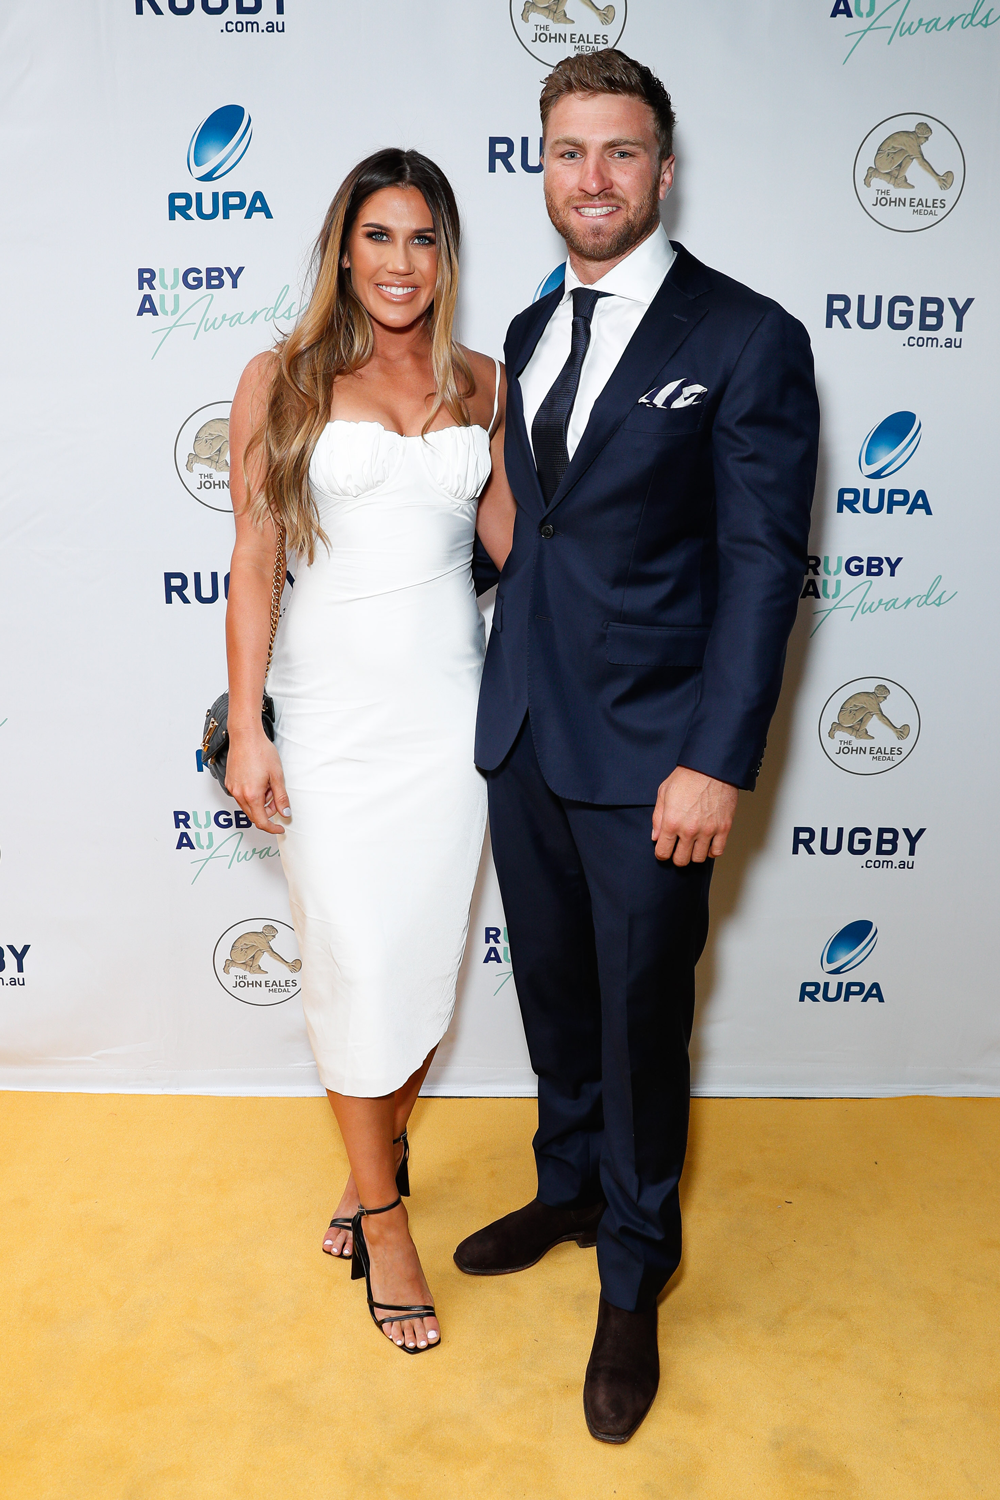 Sevens superstars Charlotte Caslick and Lewis Holland arrive at the Rugby Australia Awards. Photo: Getty Images